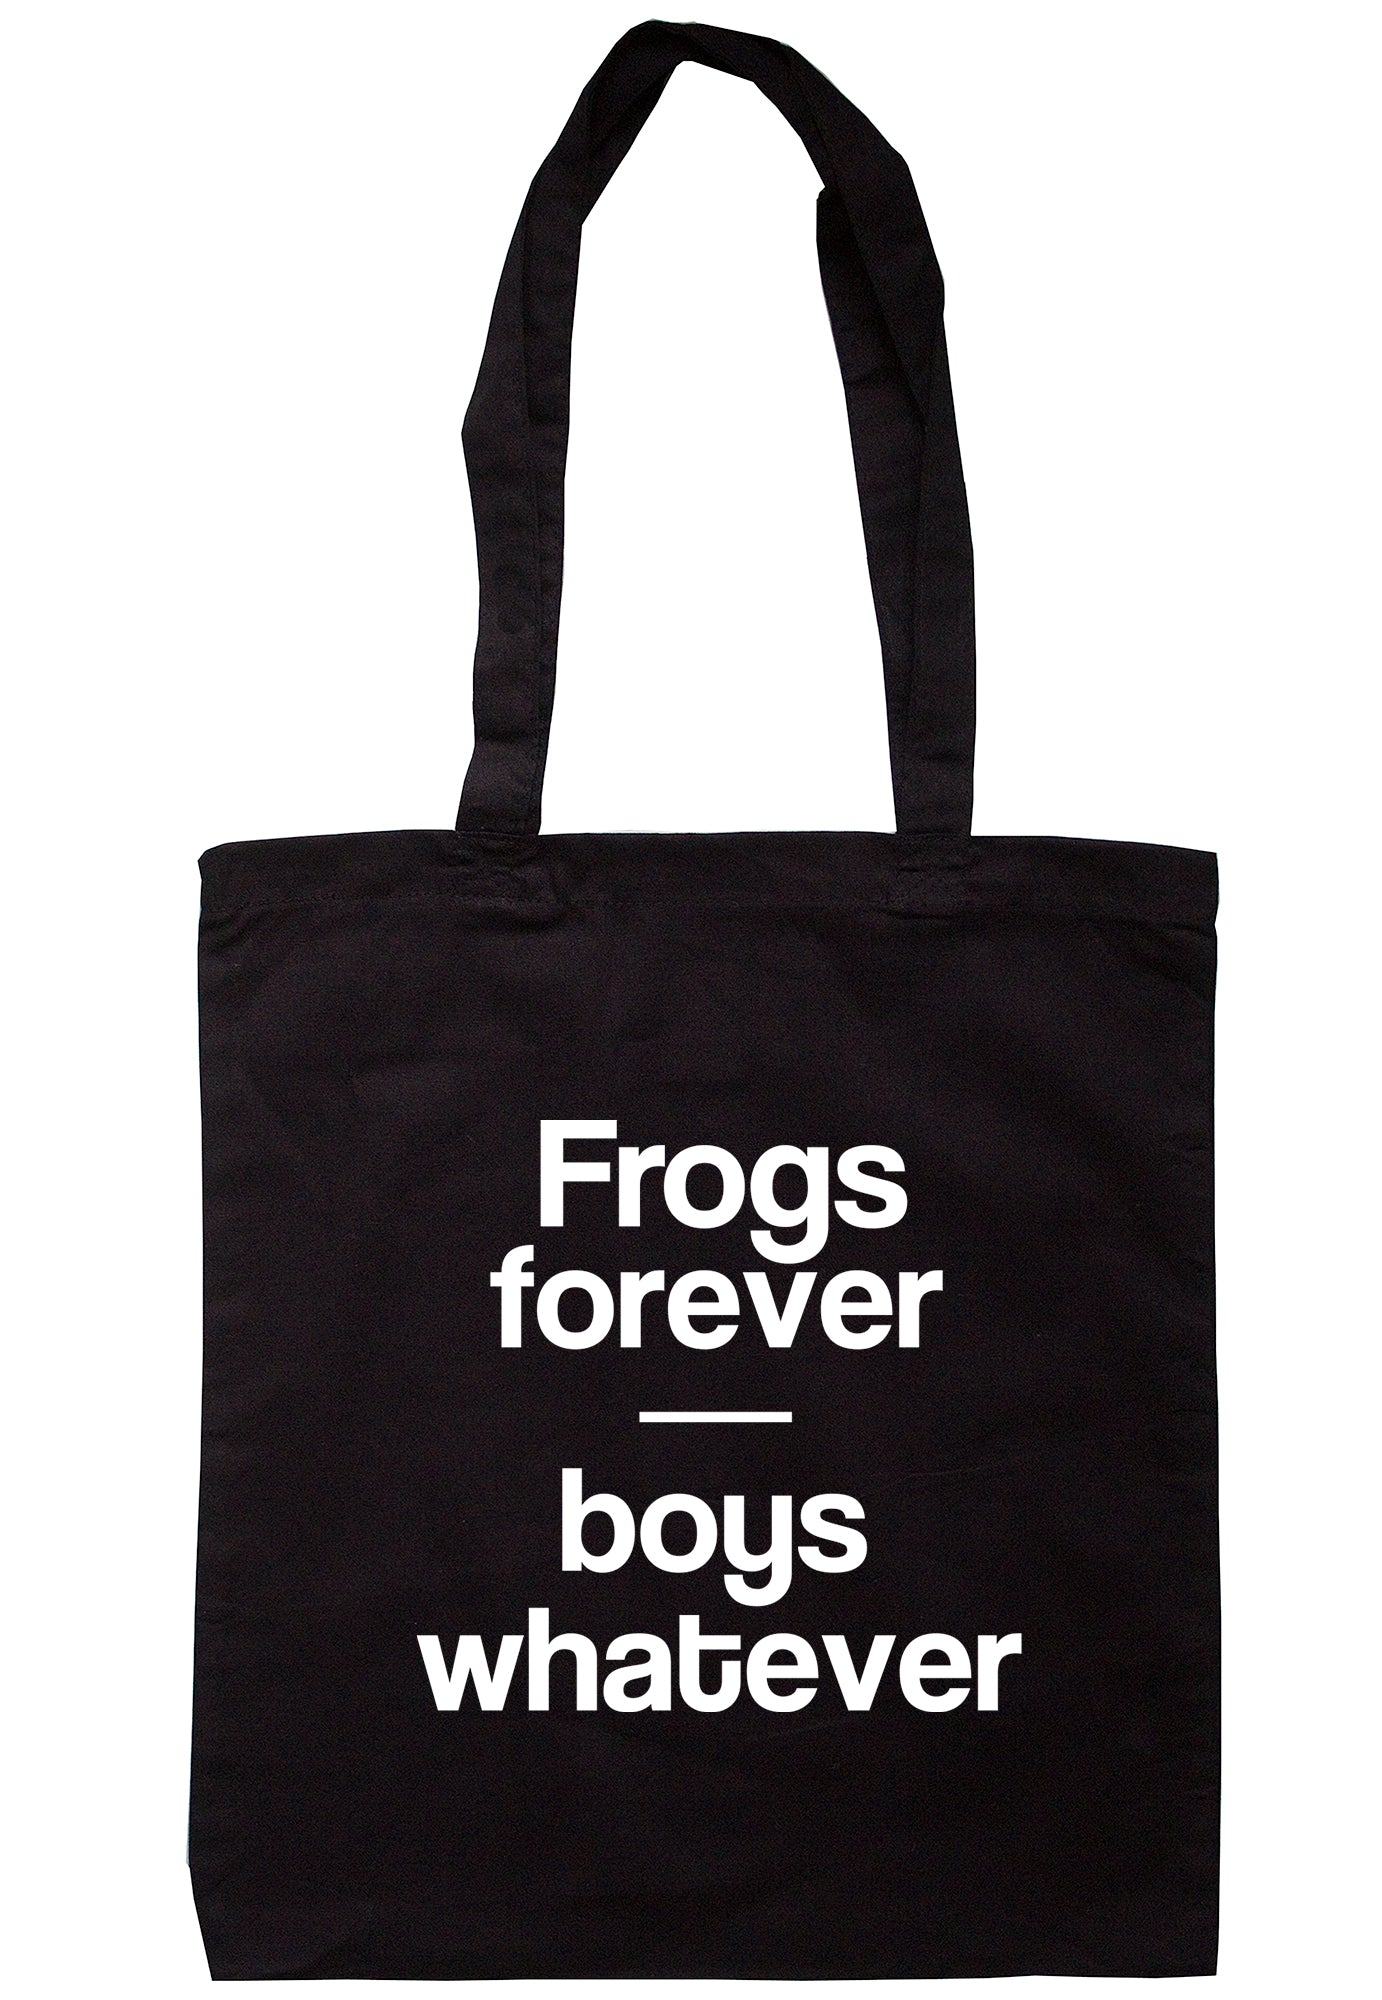 Frogs Forever Boys Whatever Tote Bag S0767